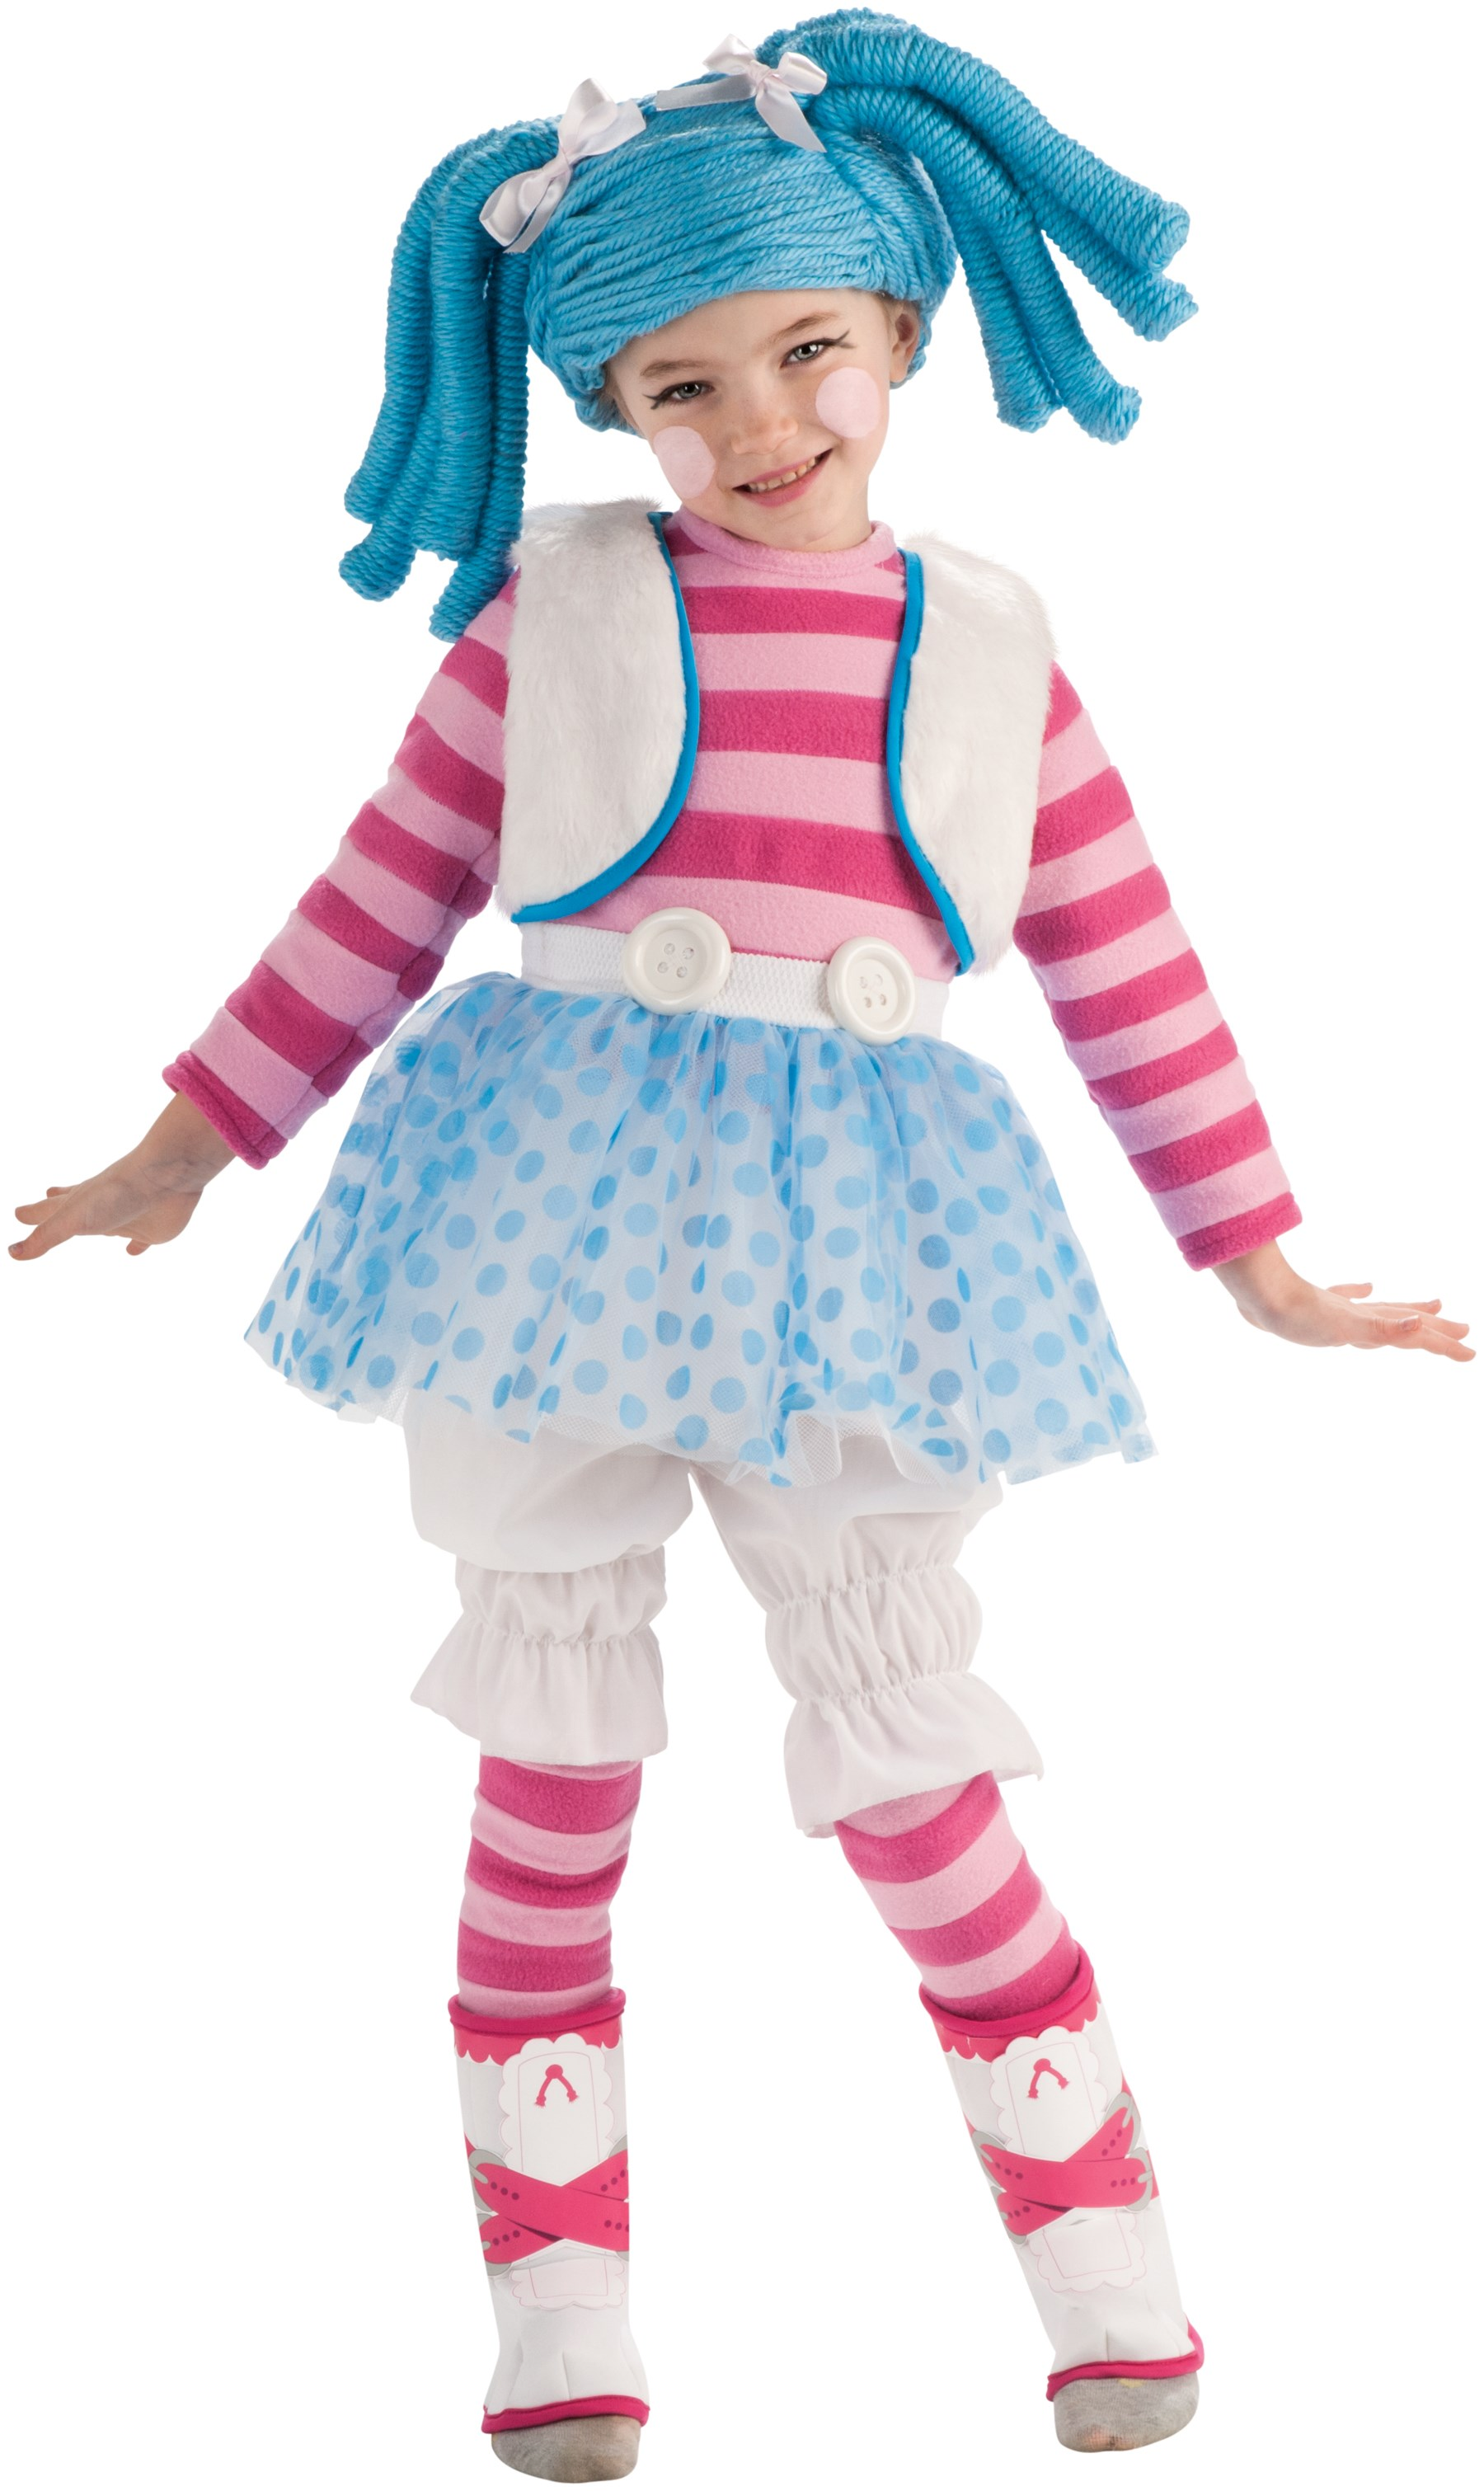 Lalaloopsy - Mittens Fluff N Stuff Doll Toddler / Child Costume